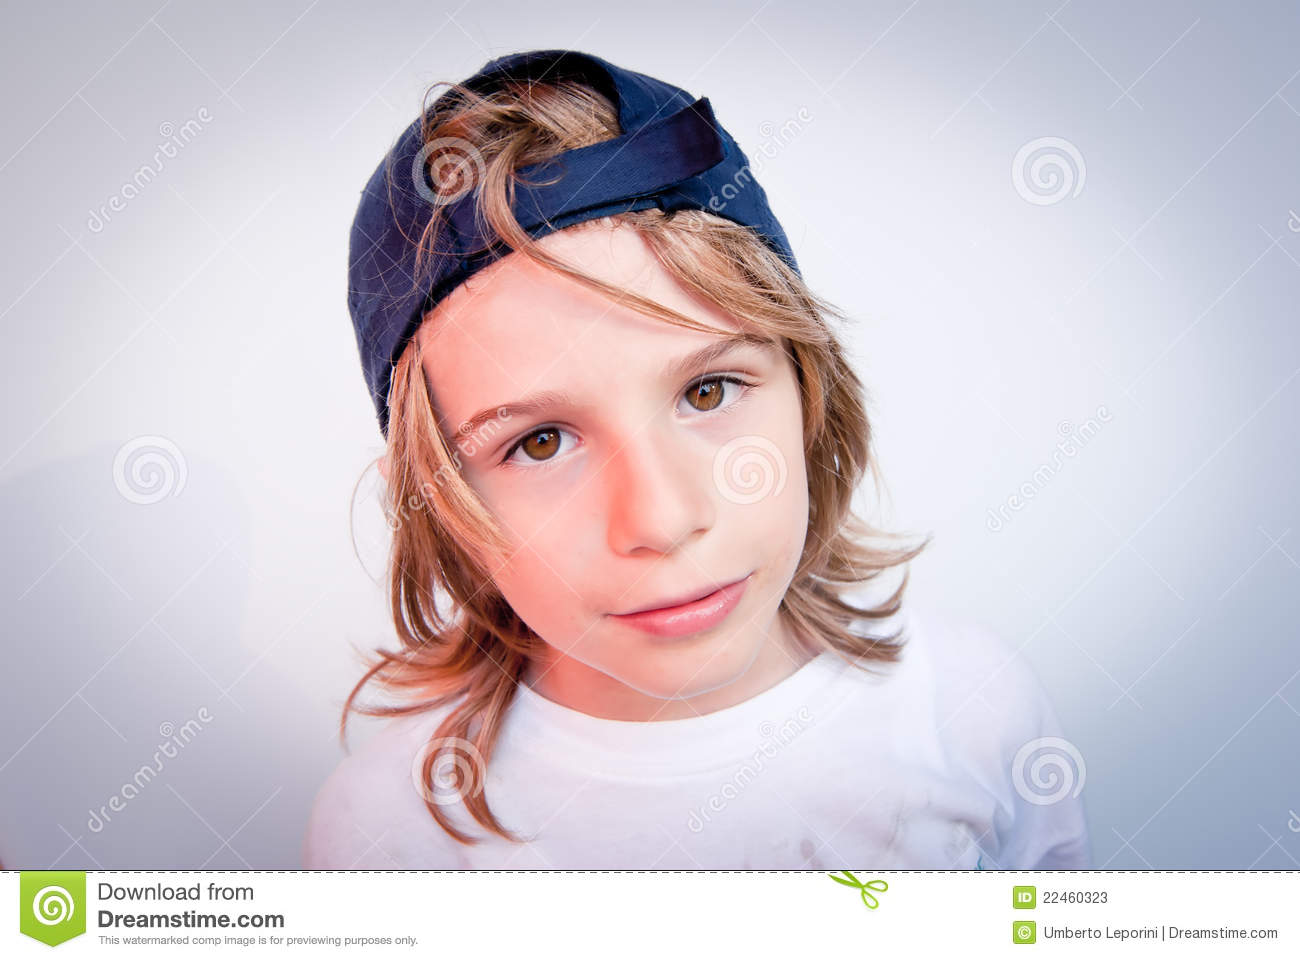 the boy with the nike hat